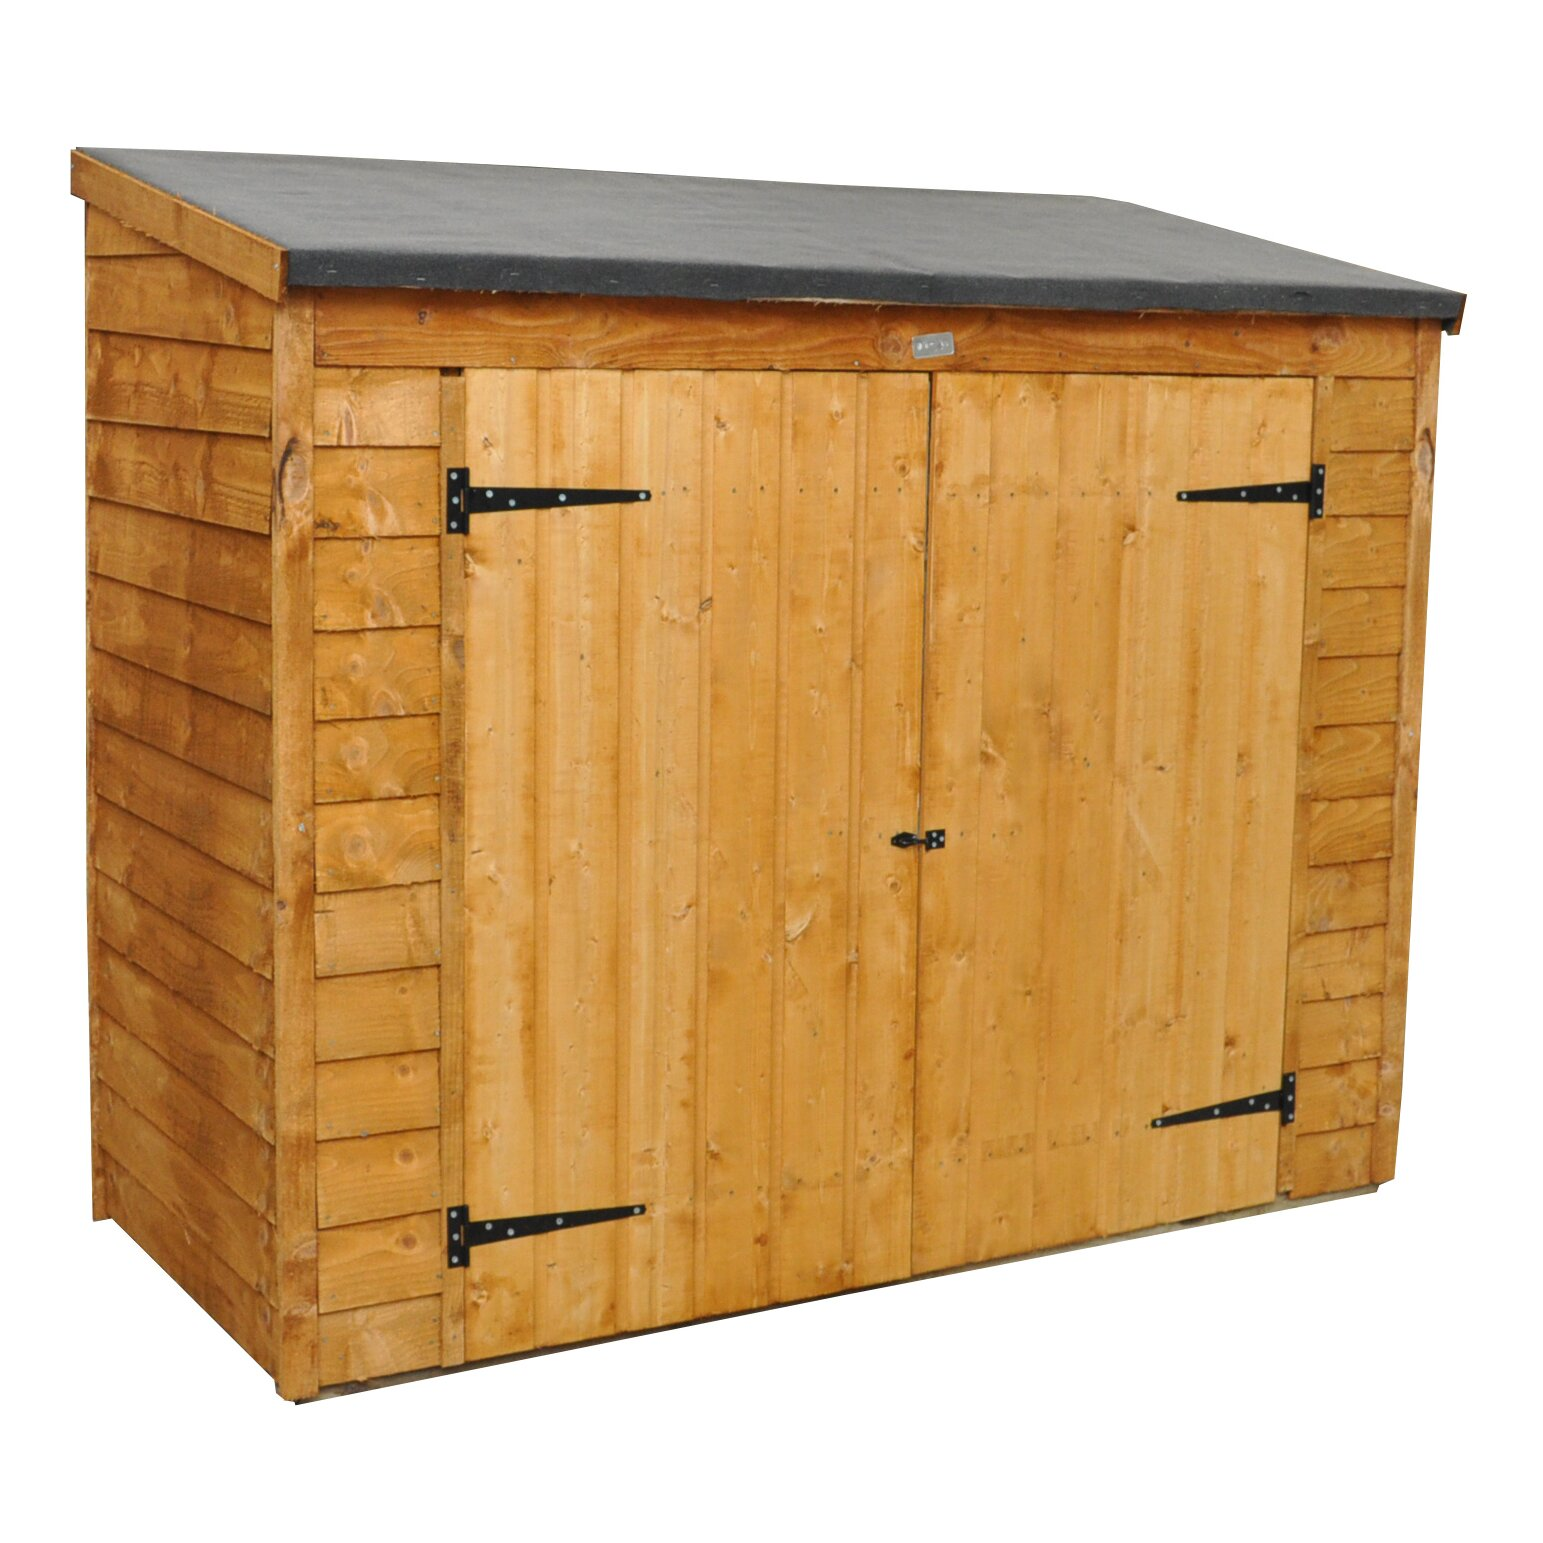 forest garden 6ft x 3ft wooden tool shed reviews